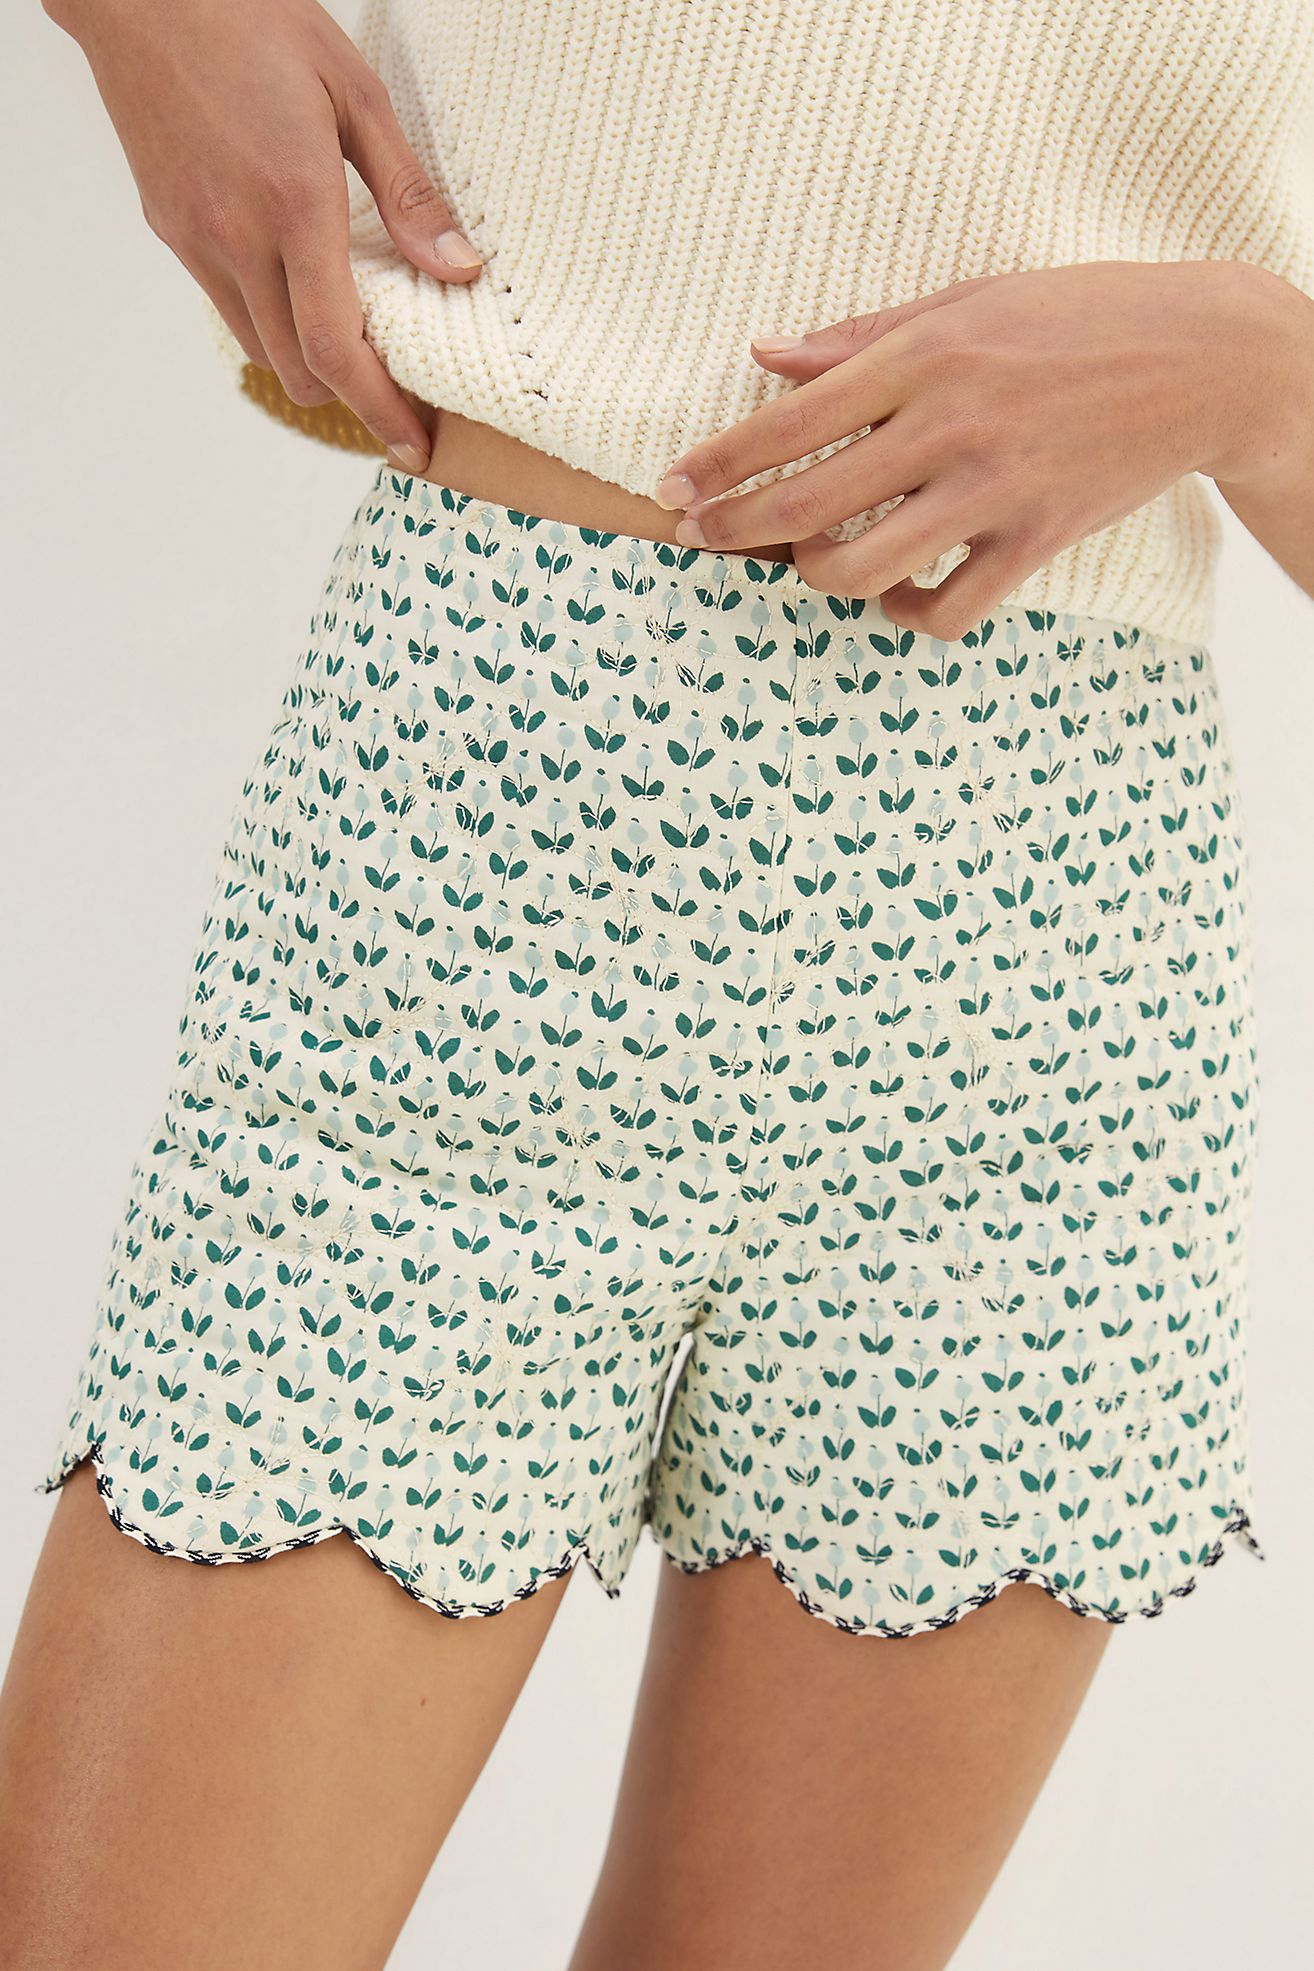 Scalloped Shorts | Recent Finds 7/9